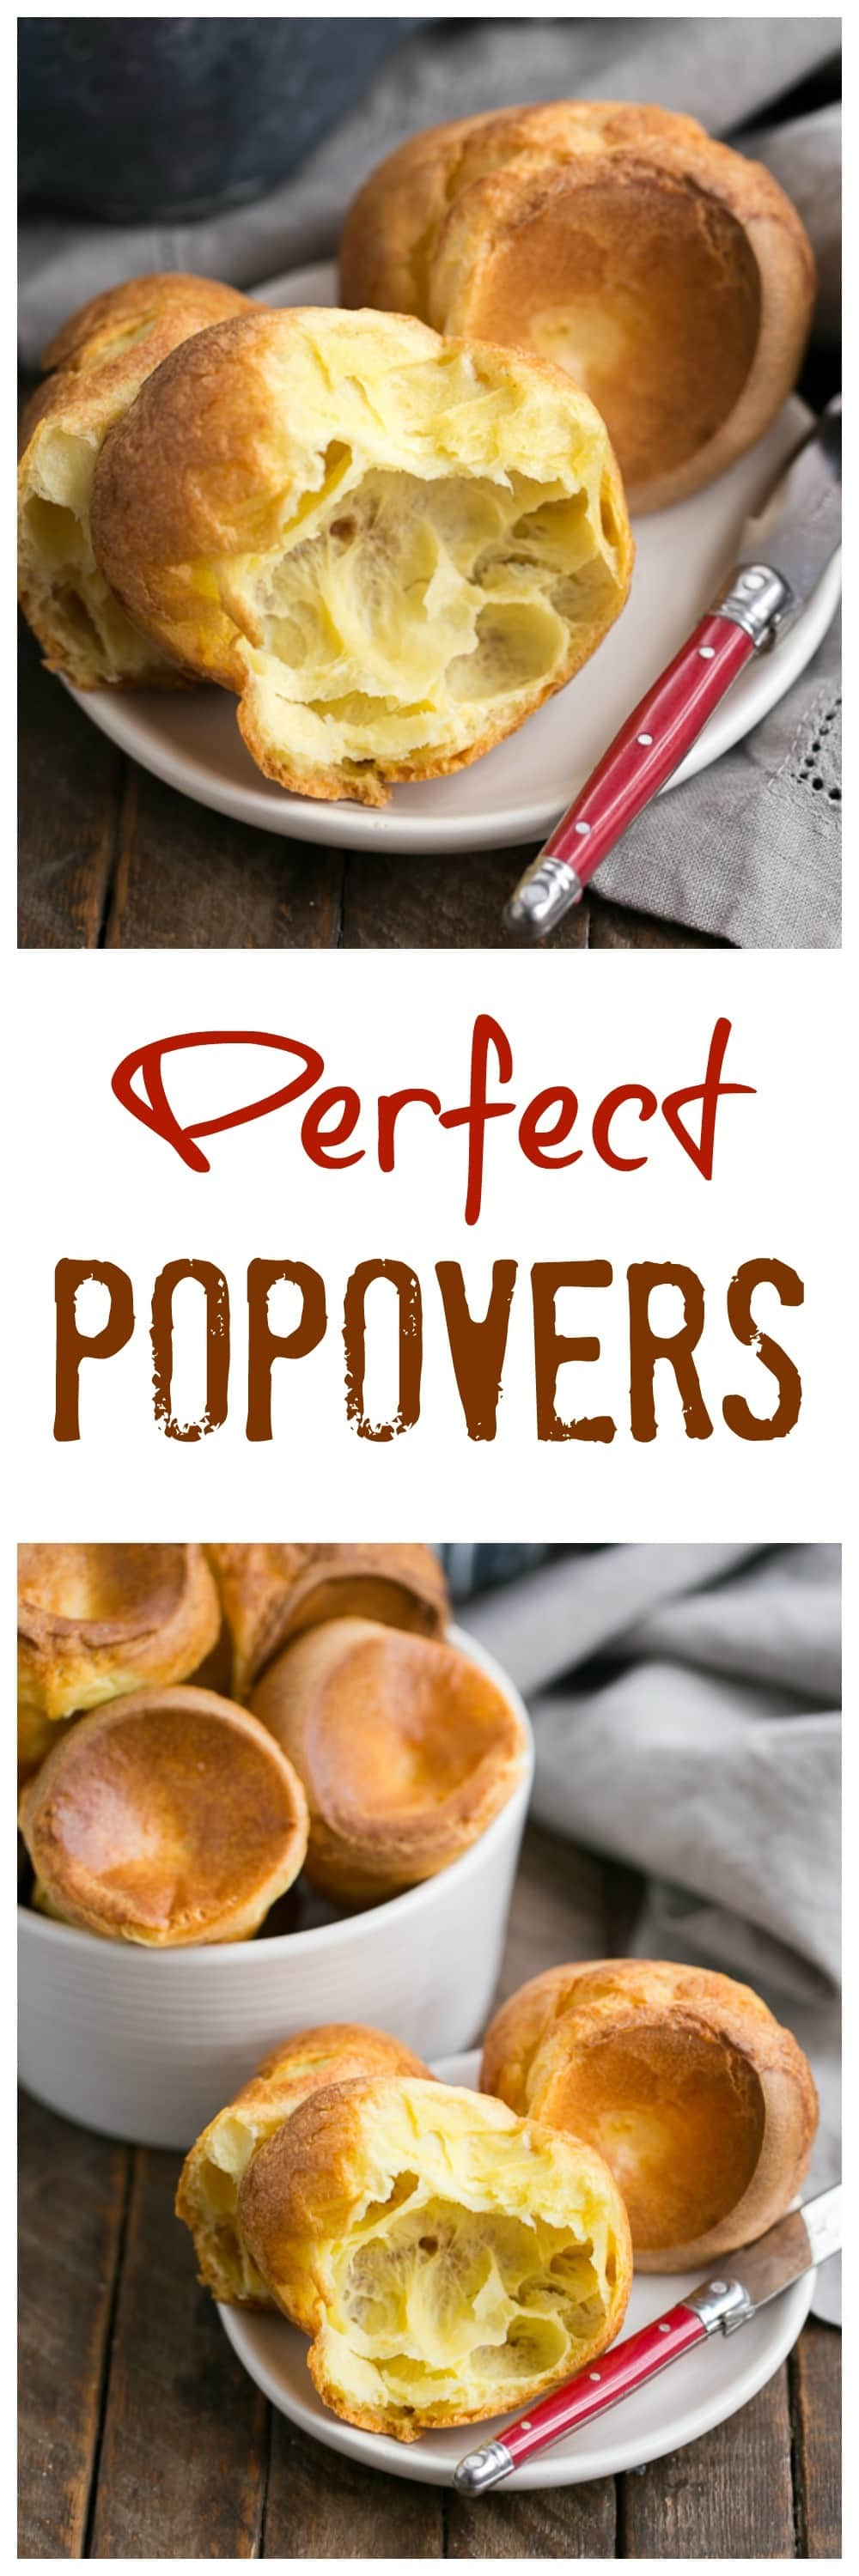 Perfect Popovers from Dorie Greenspan